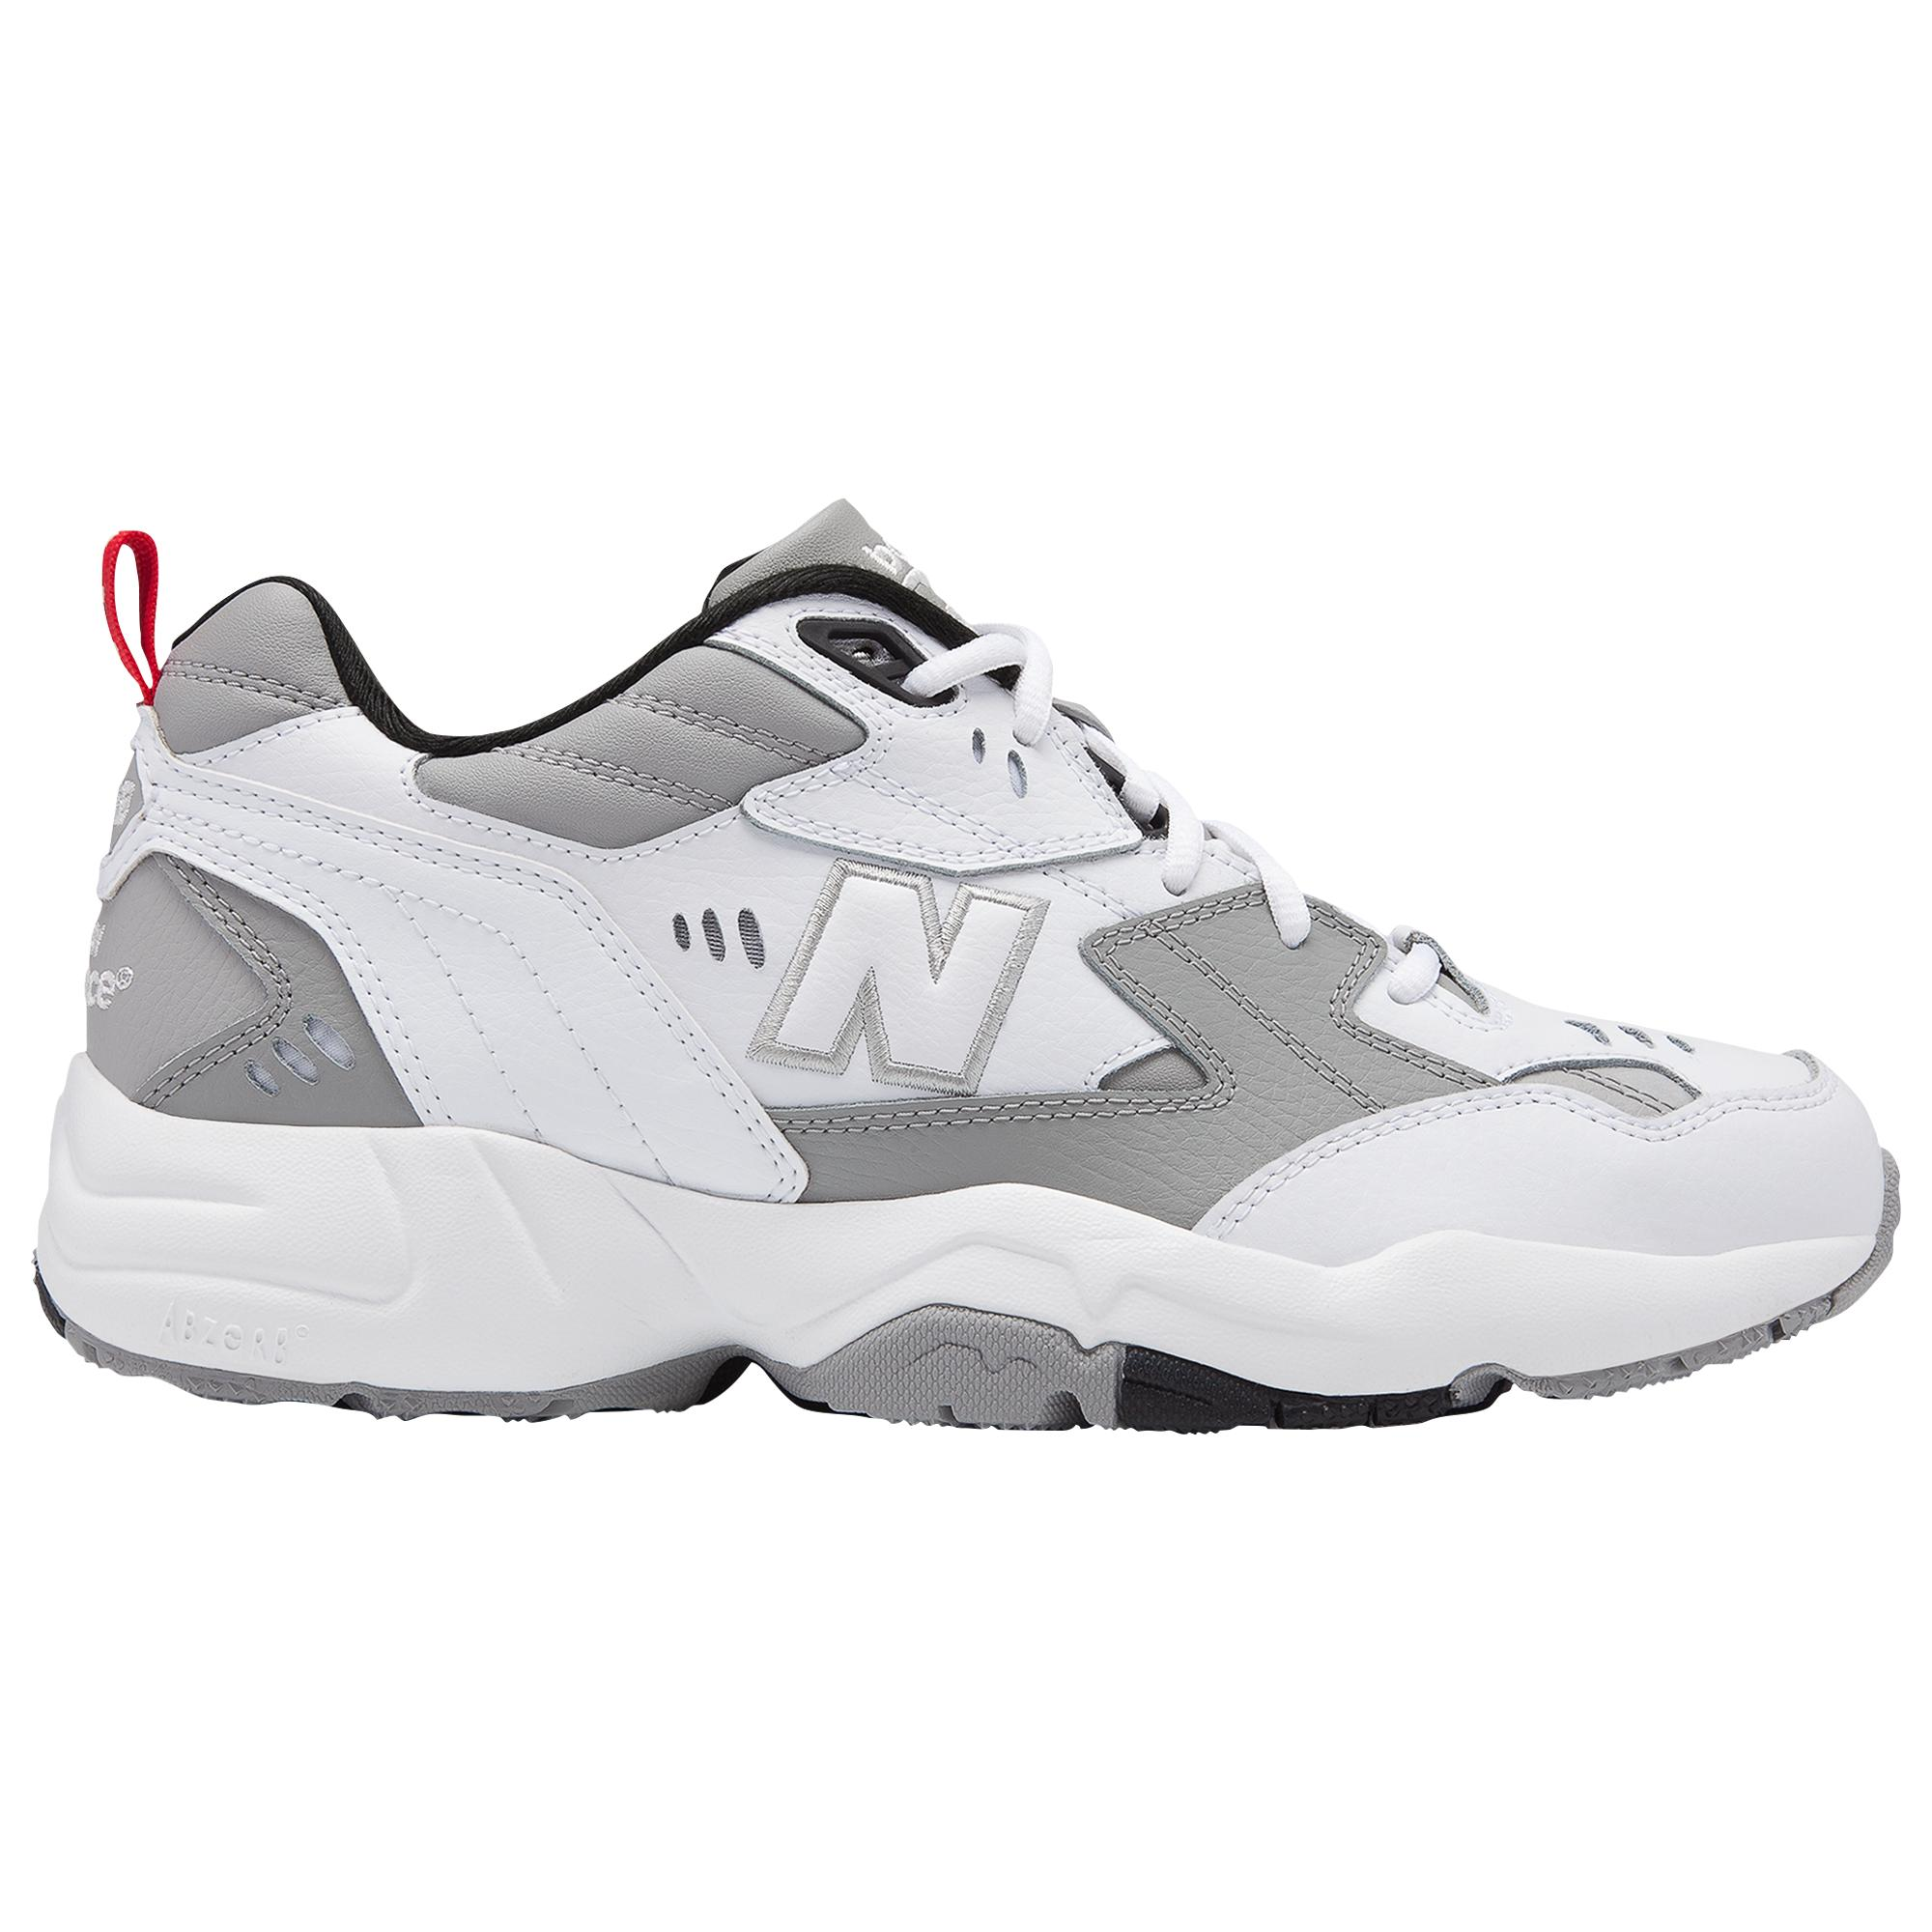 New Balance Leather 608v1 in White/Grey